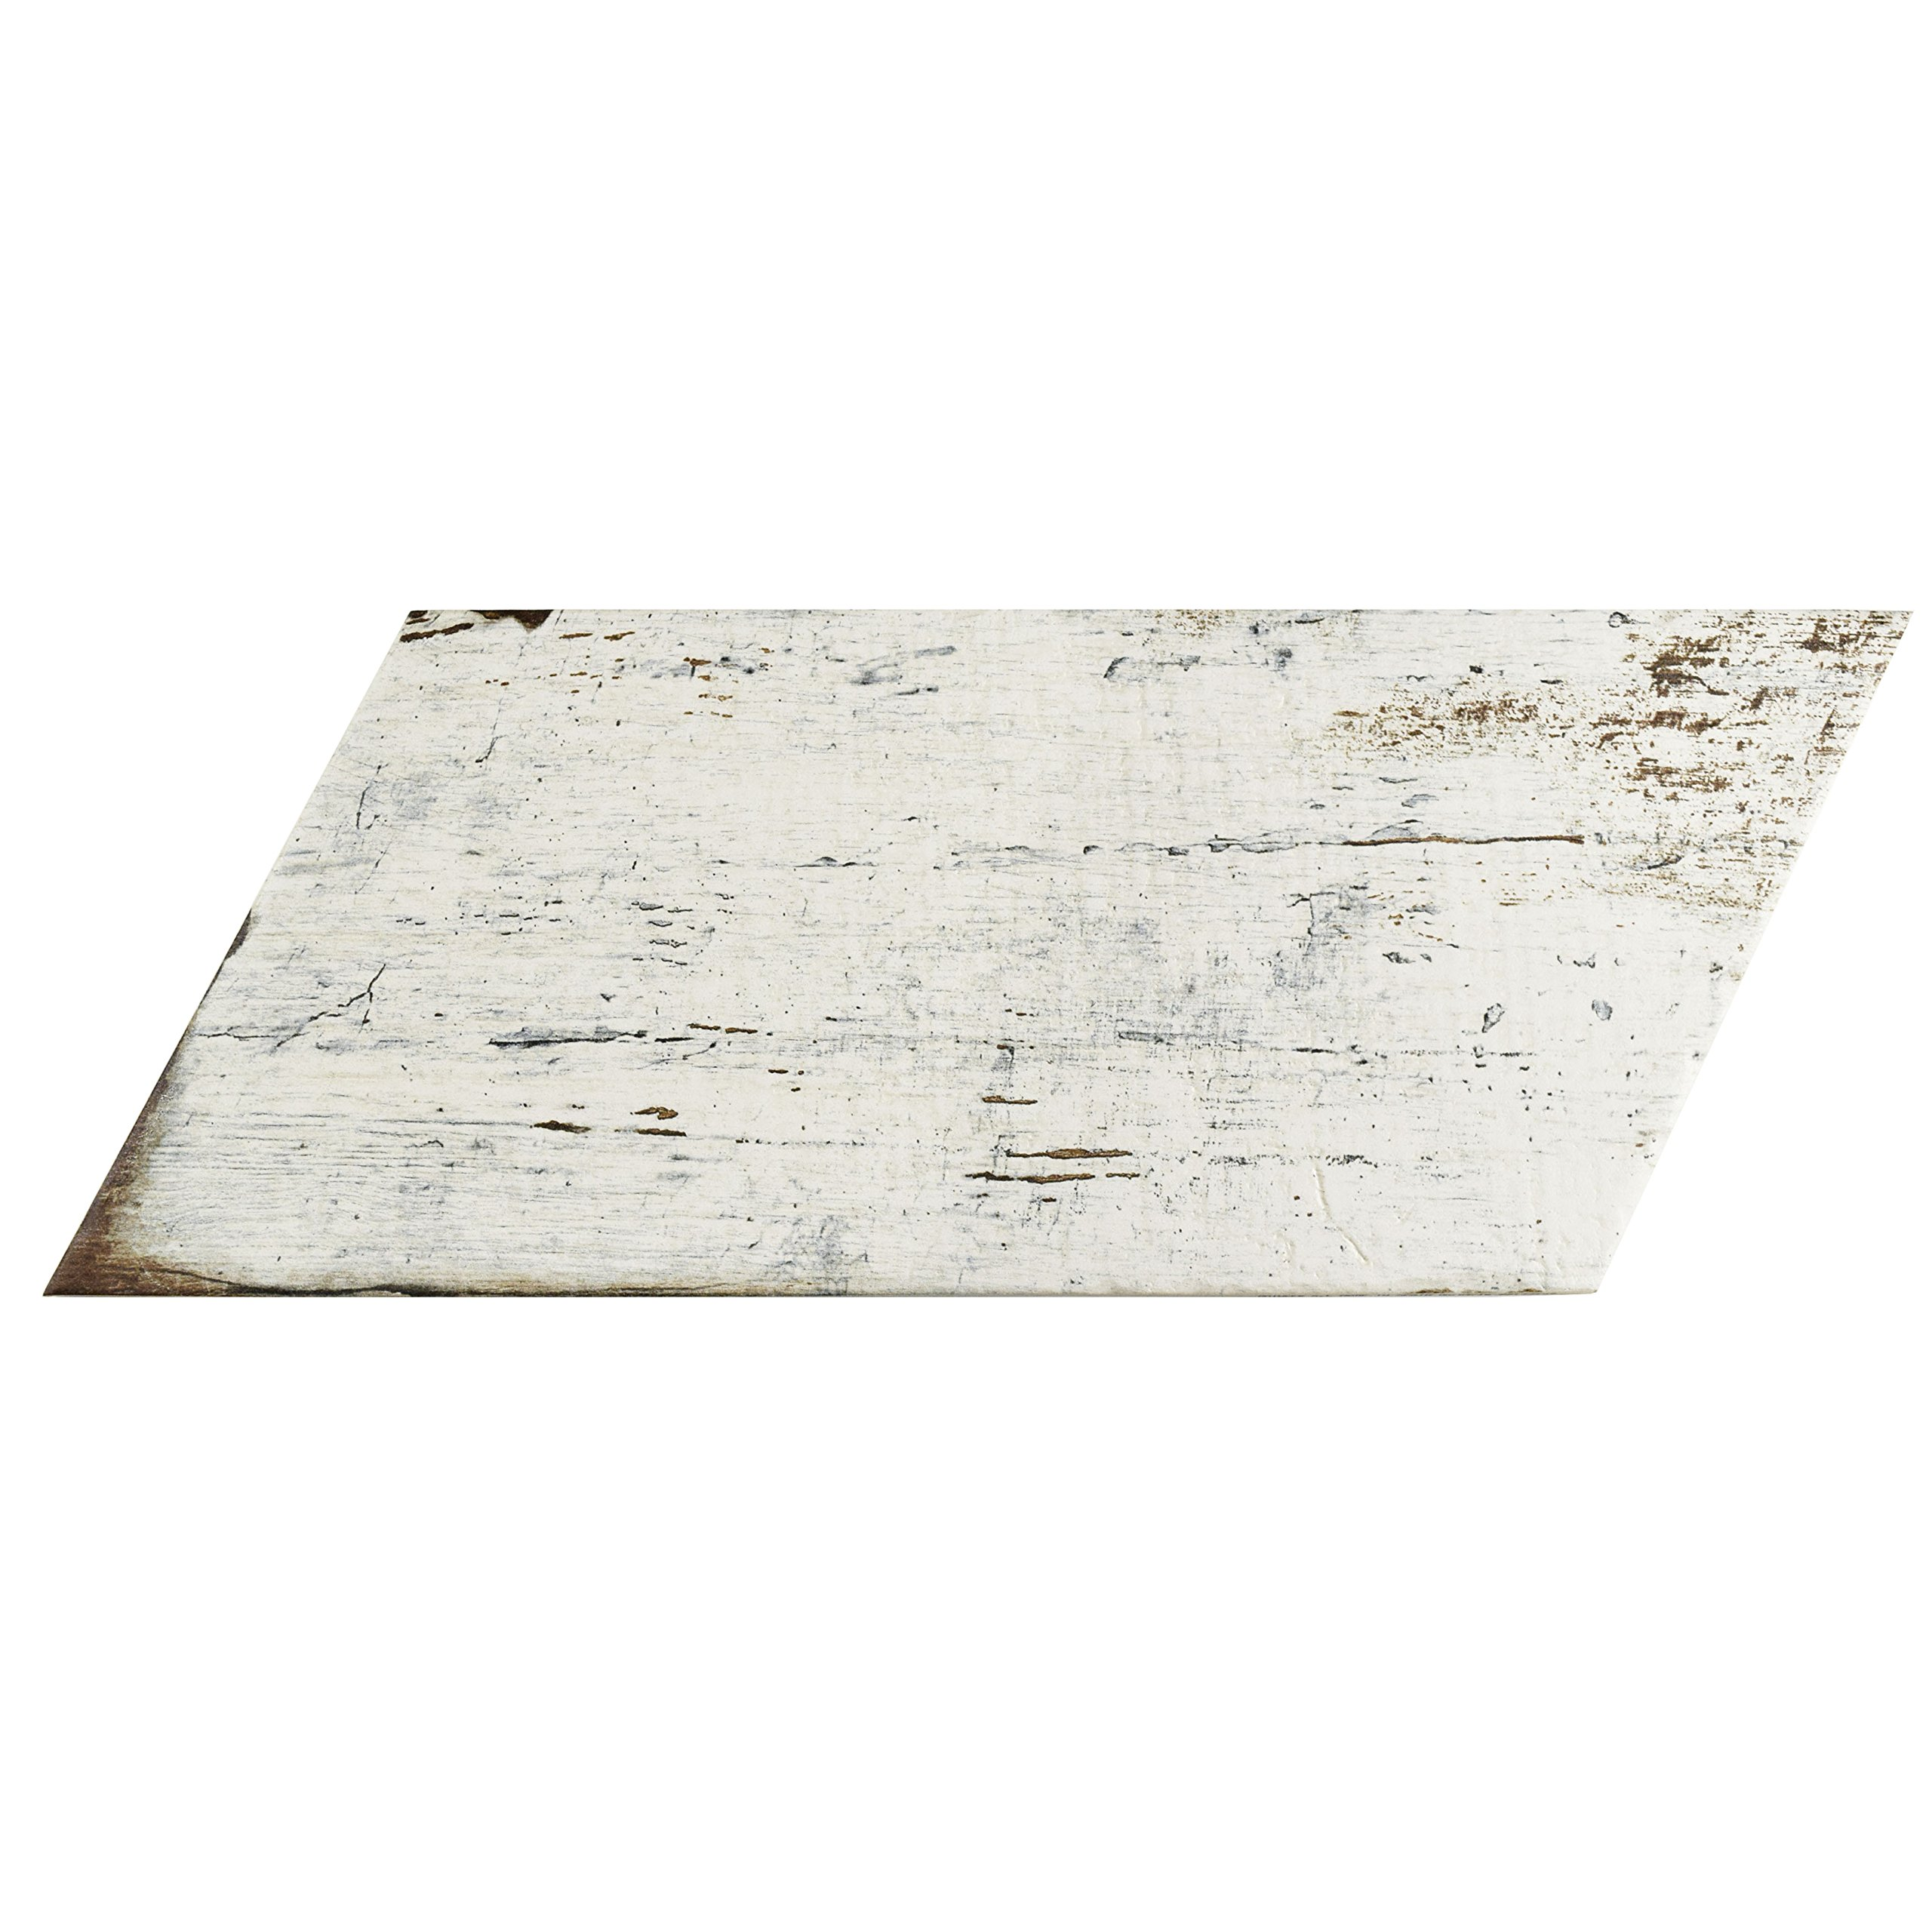 SomerTile FNURTNBL Vintage Naveta Porcelain Floor & Wall Tile, 7.125'' x 16.375'', Blanc,,, White, Brown by SOMERTILE